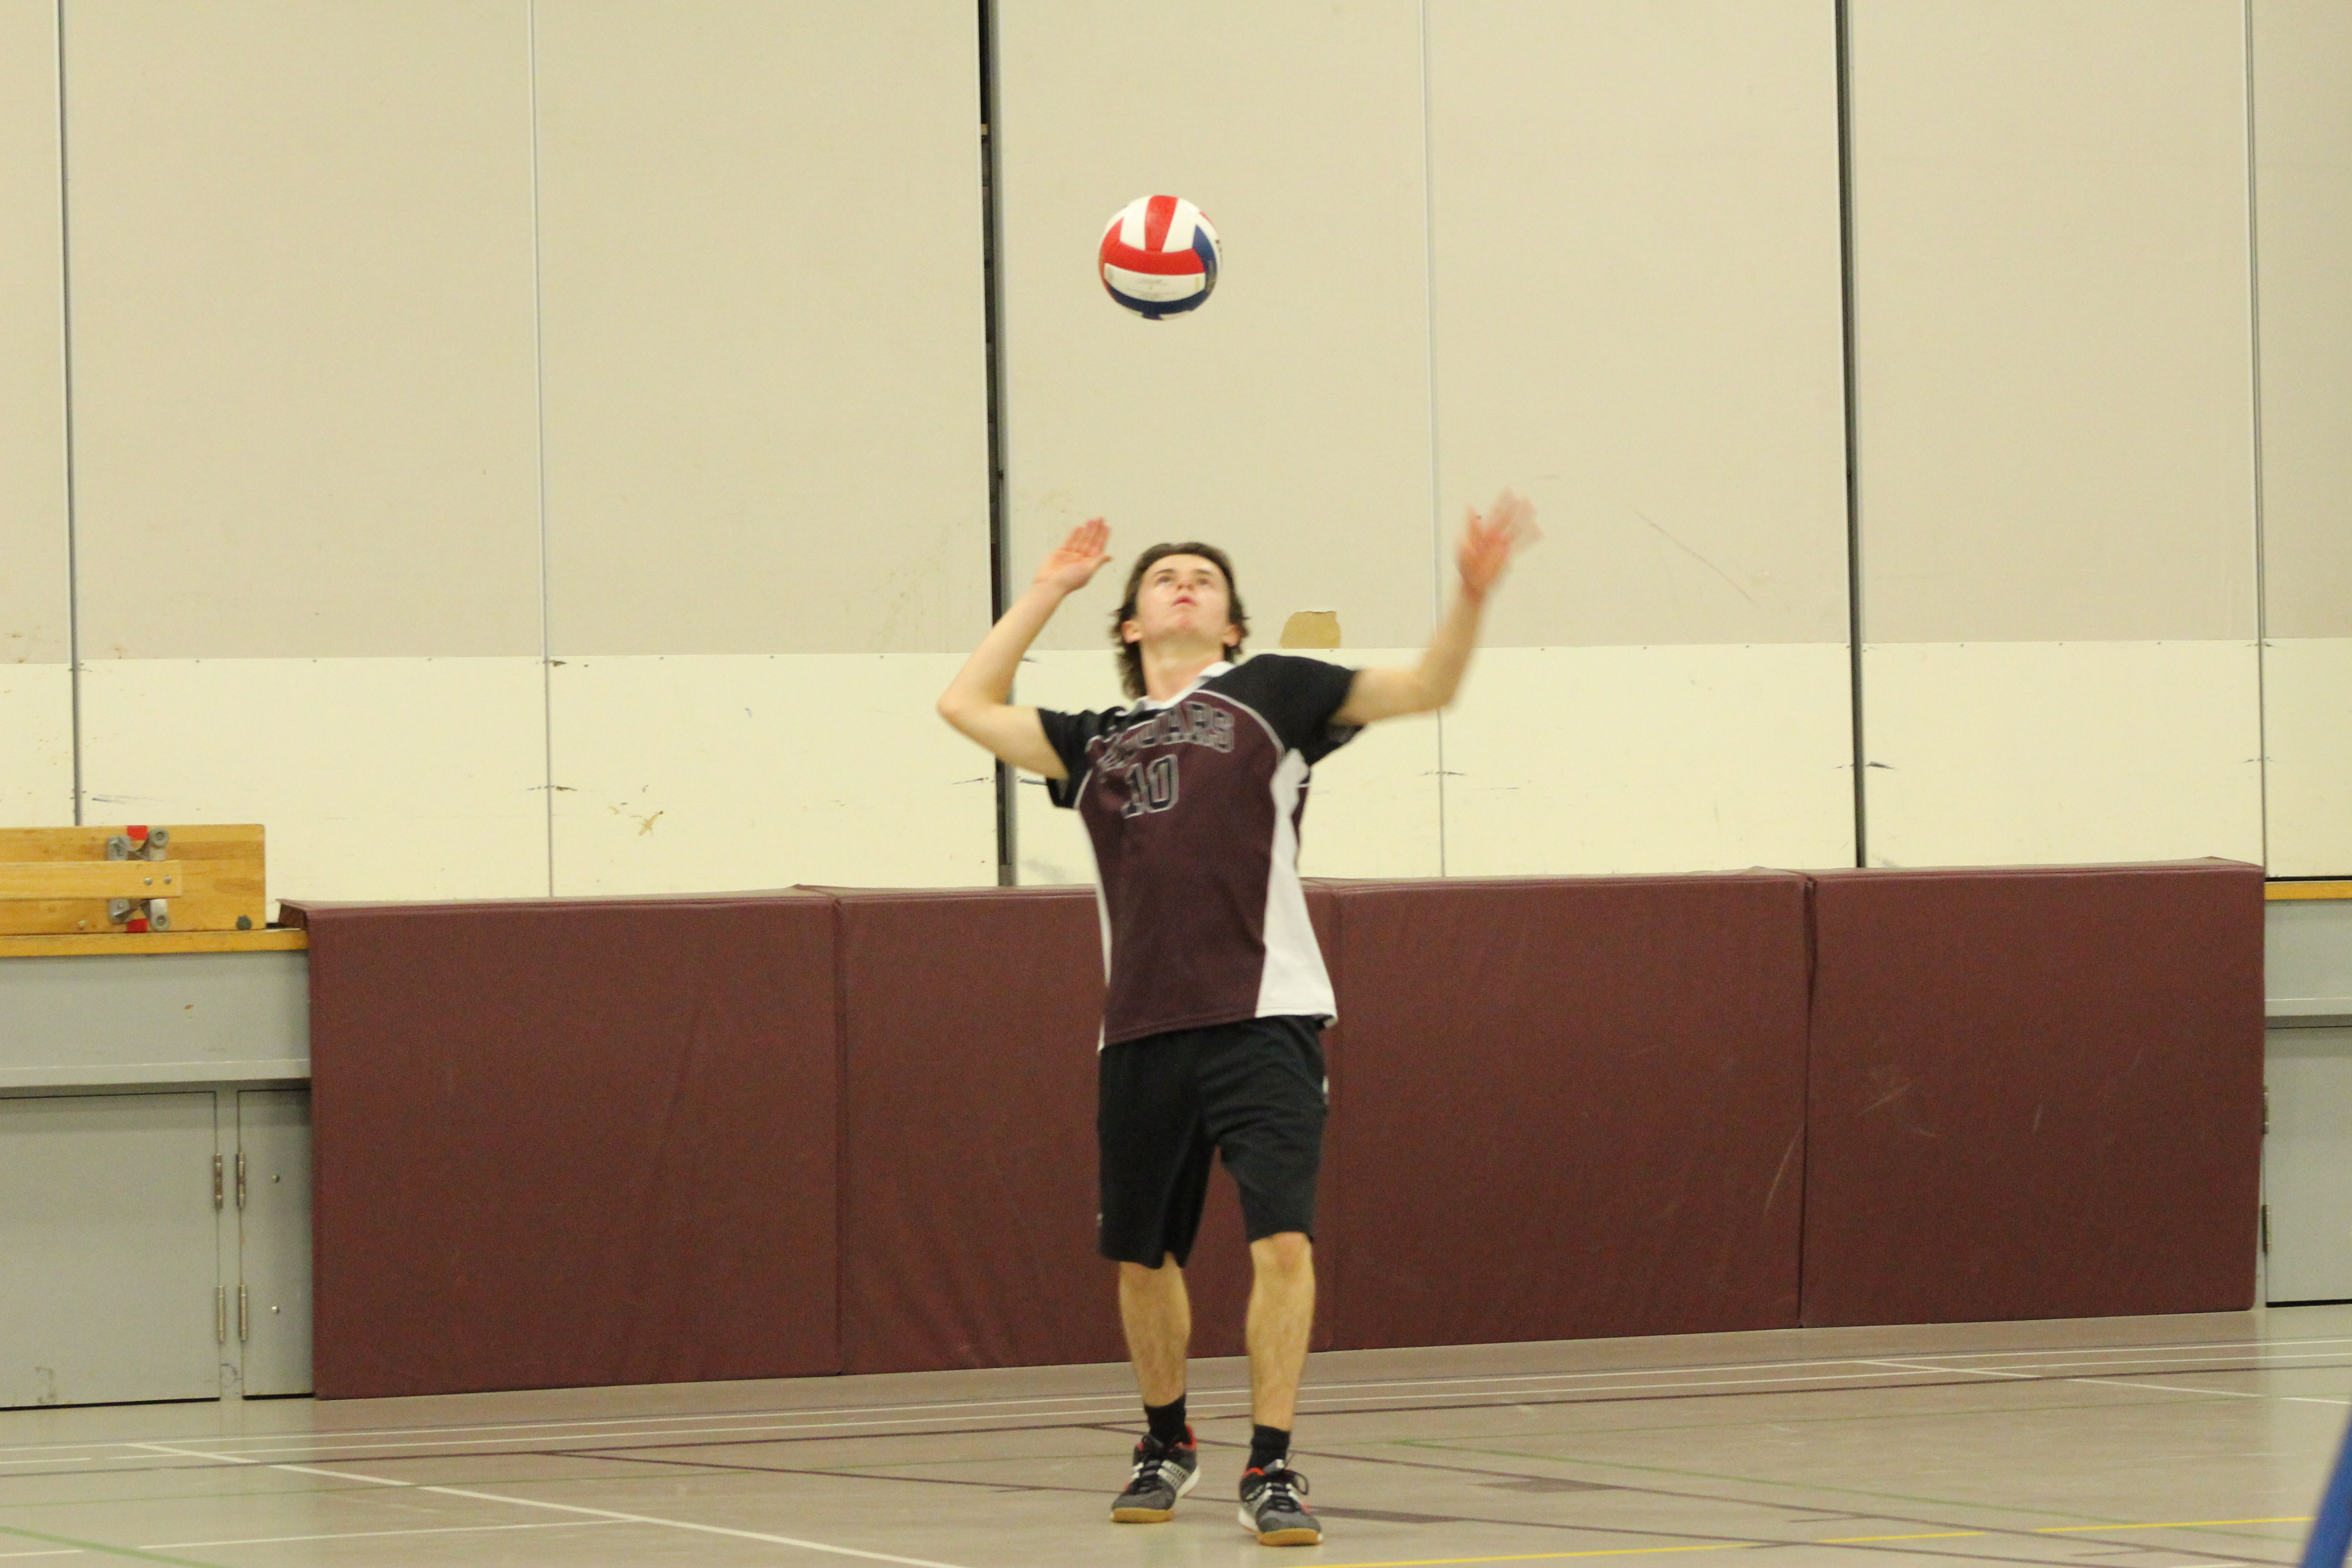 Alex Paquette From The Junior Boys Team Is About To Serve The Ball To Adhs Sports Boys Teams